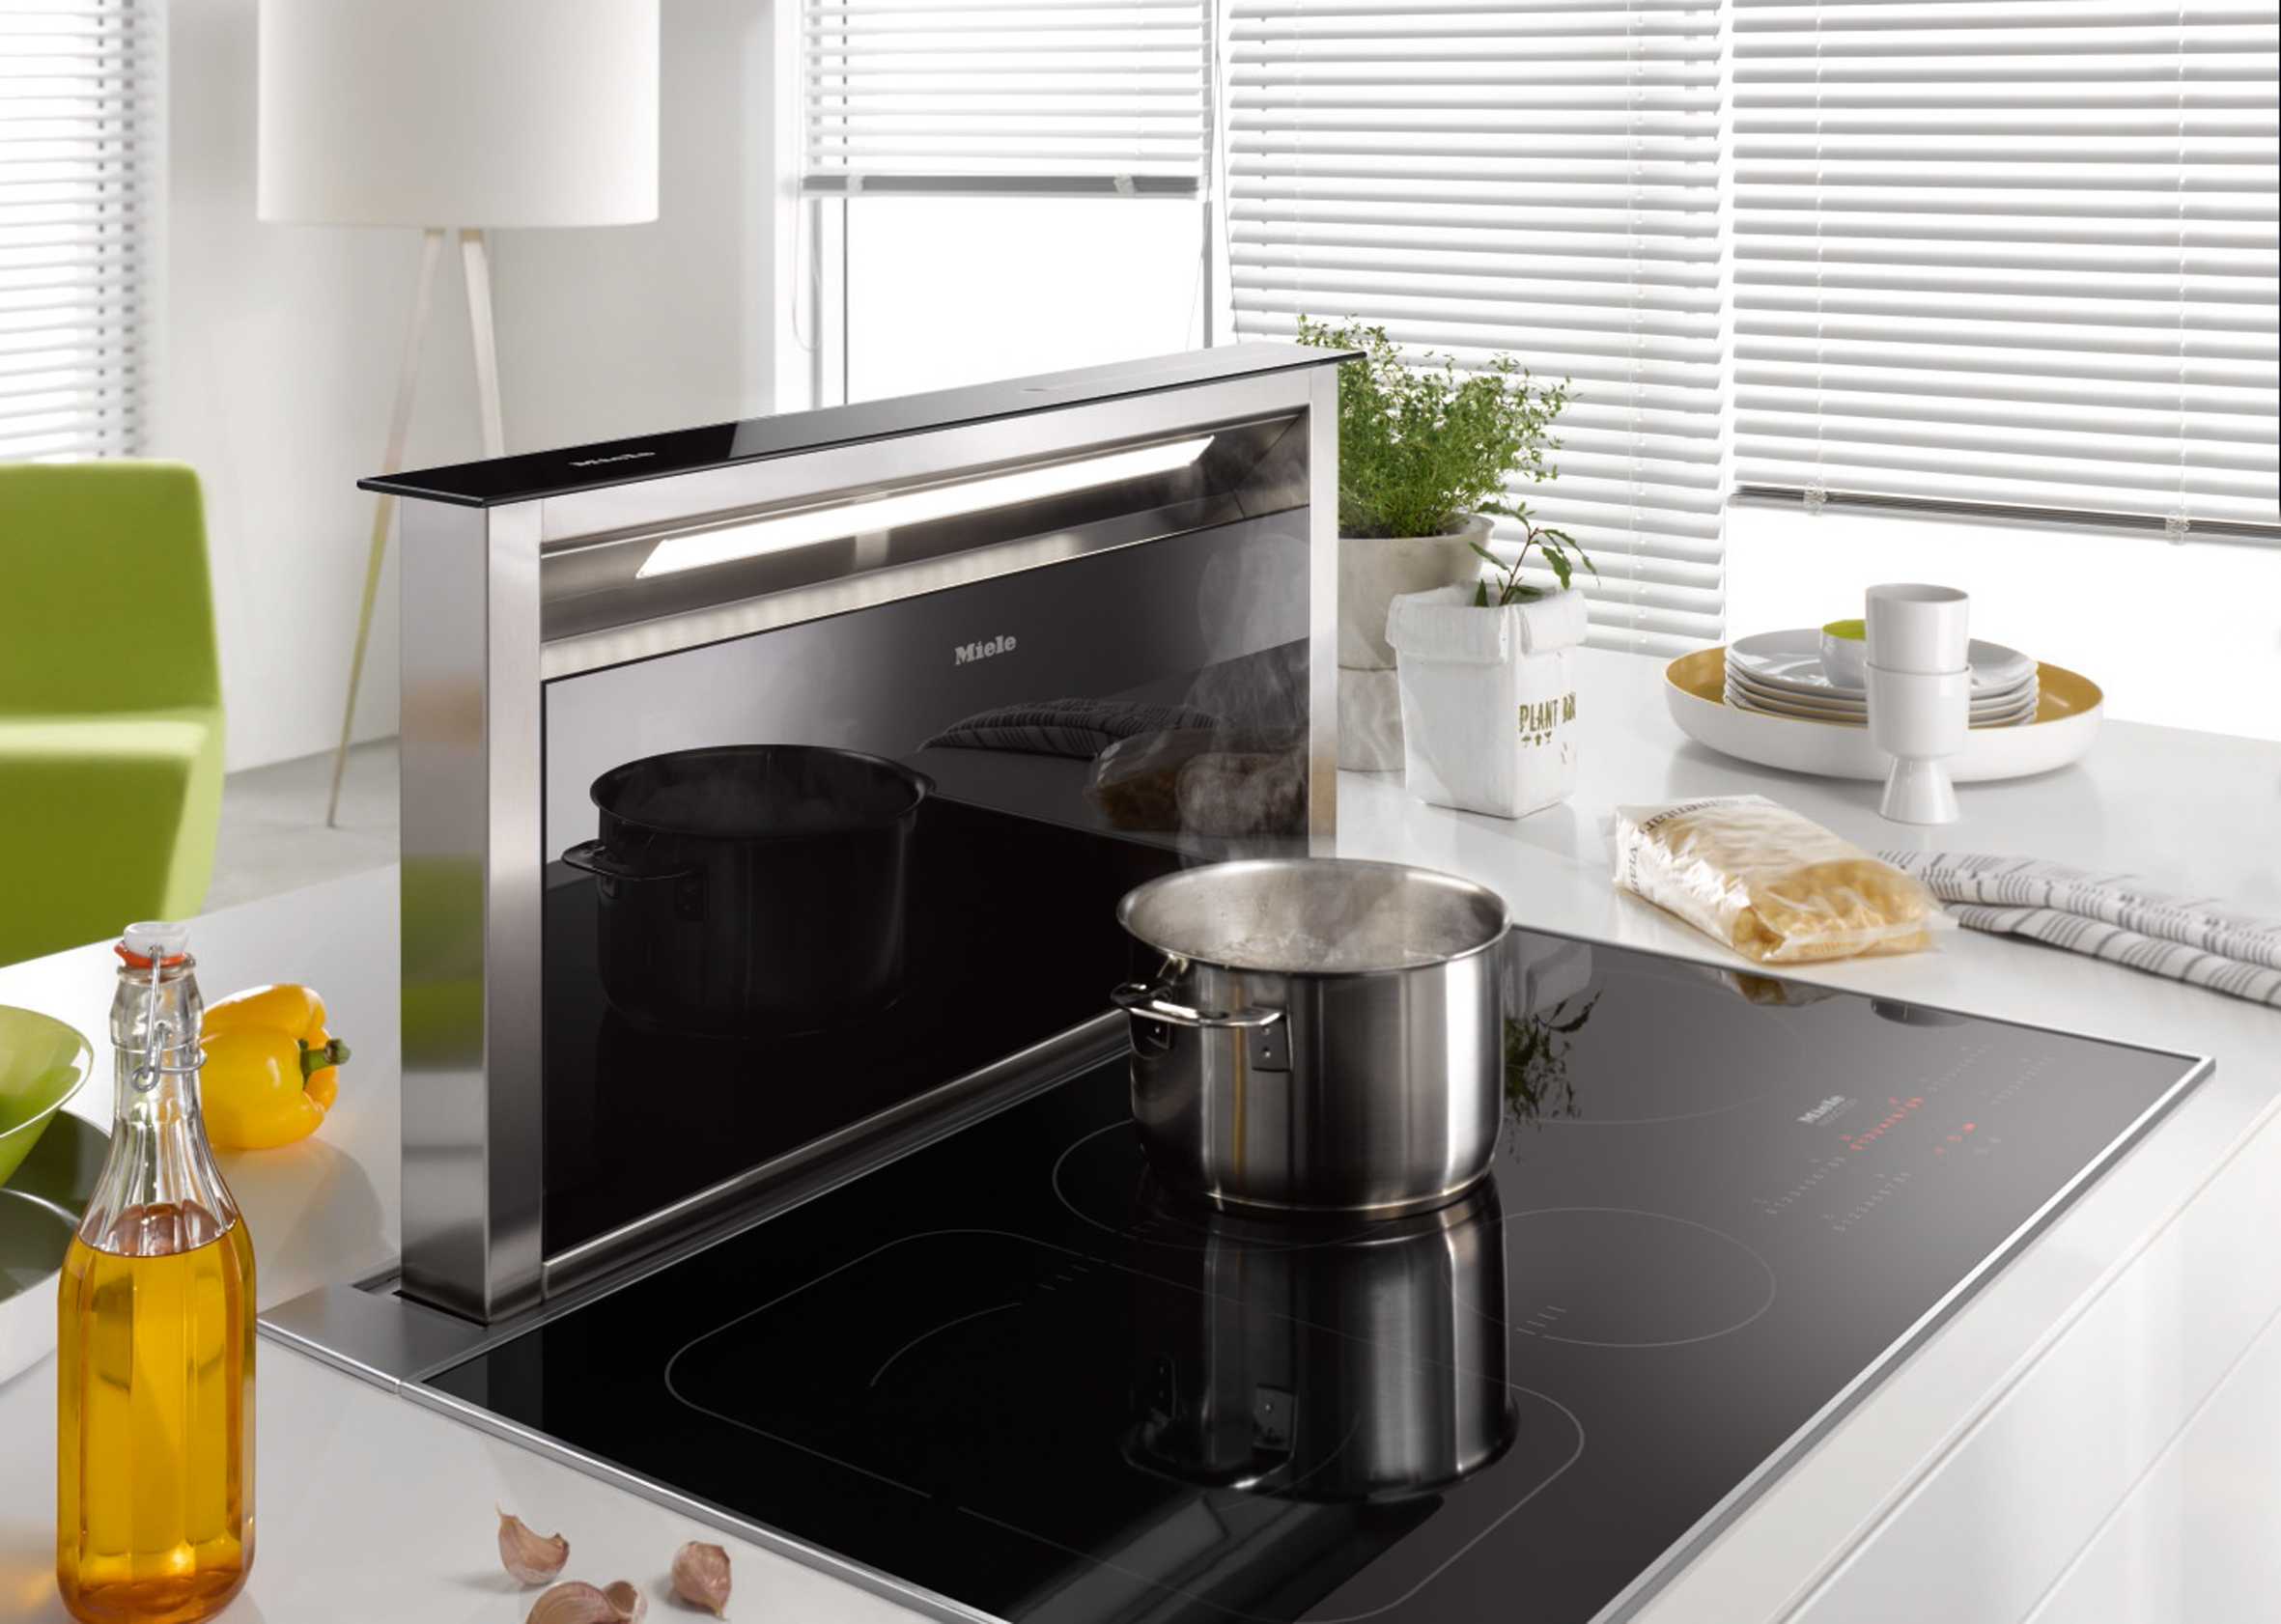 Miele 5 questions before choosing appliances downdraft extractor